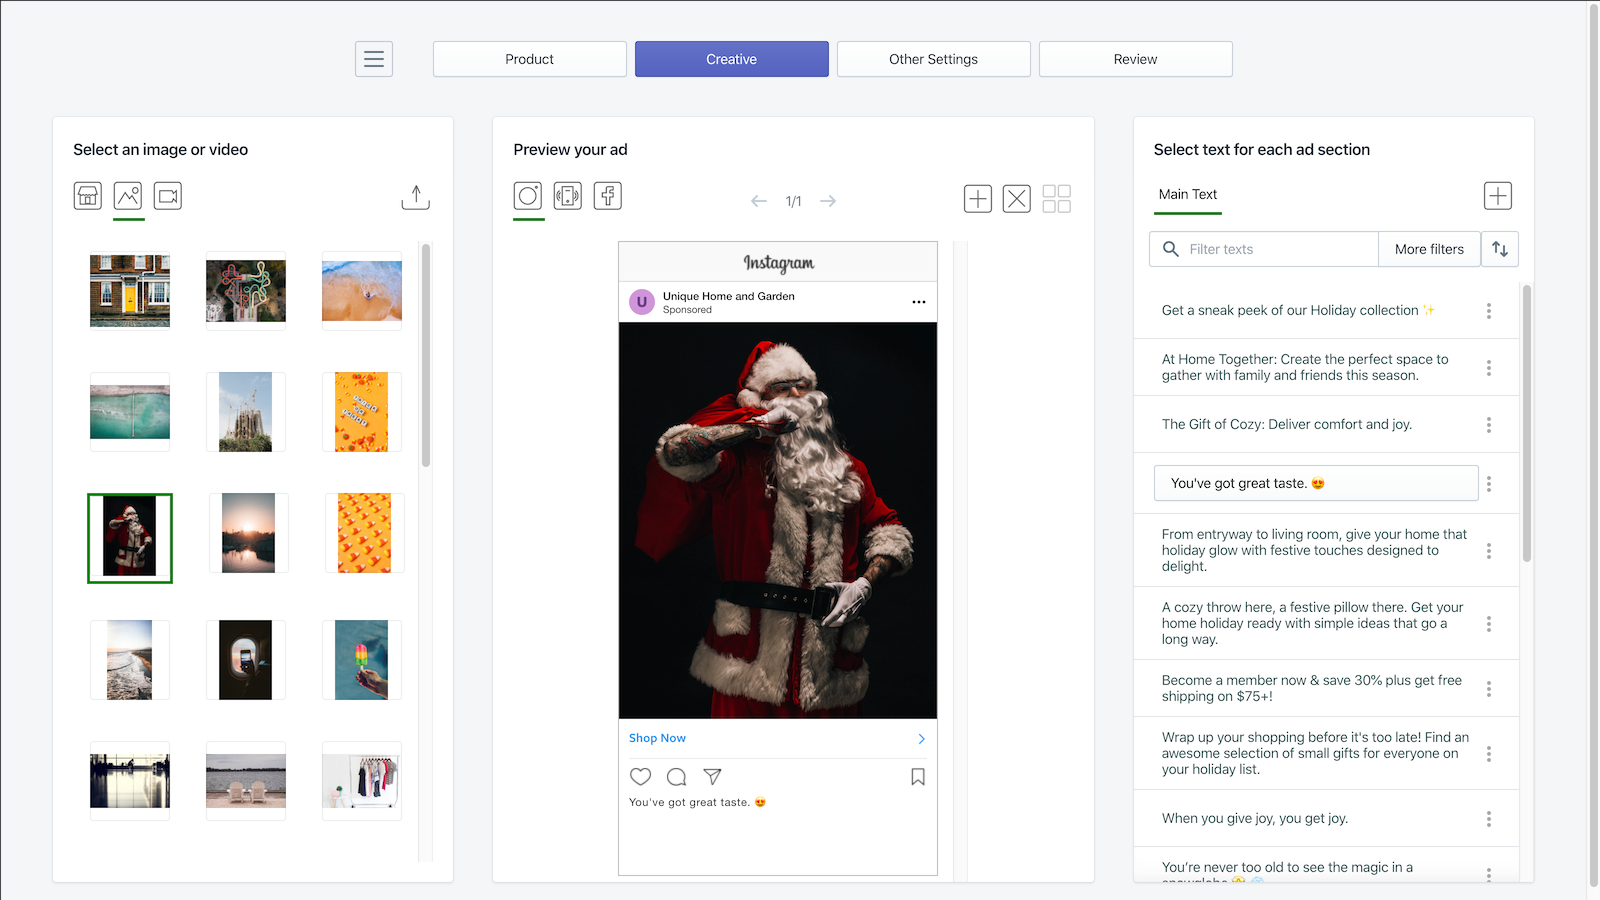 Preview your ad by combining image, video, and text